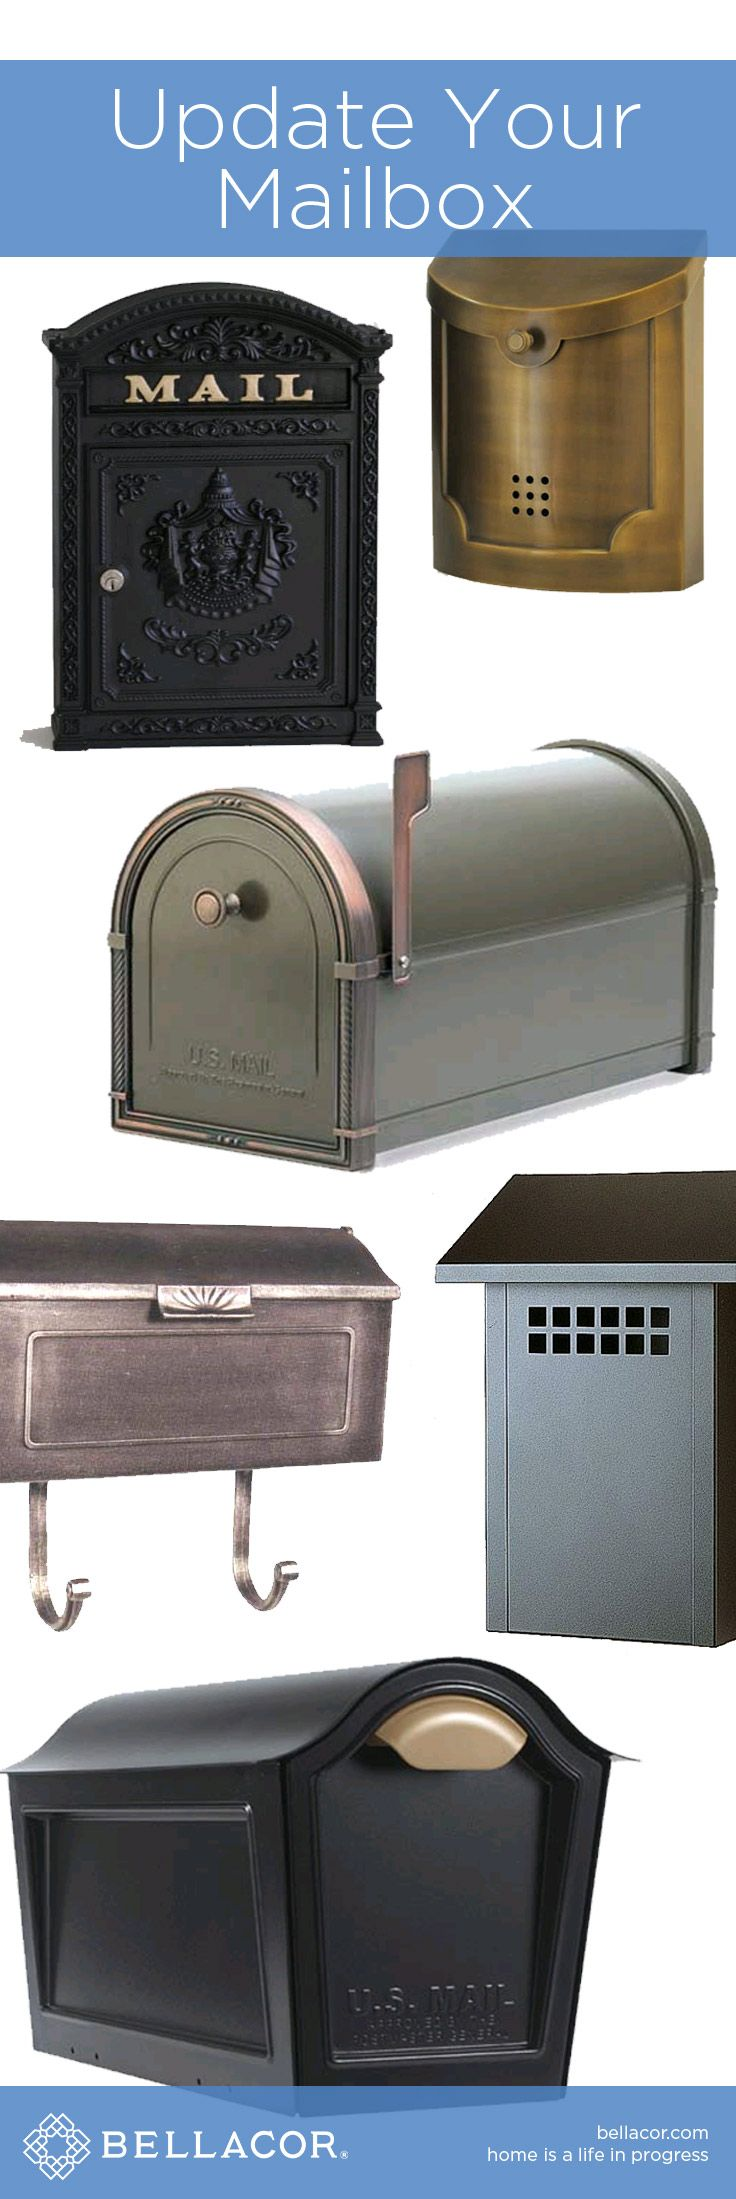 Update Your Mailbox for Ultimate Curb Appeal! Shop http://www.bellacor.com/